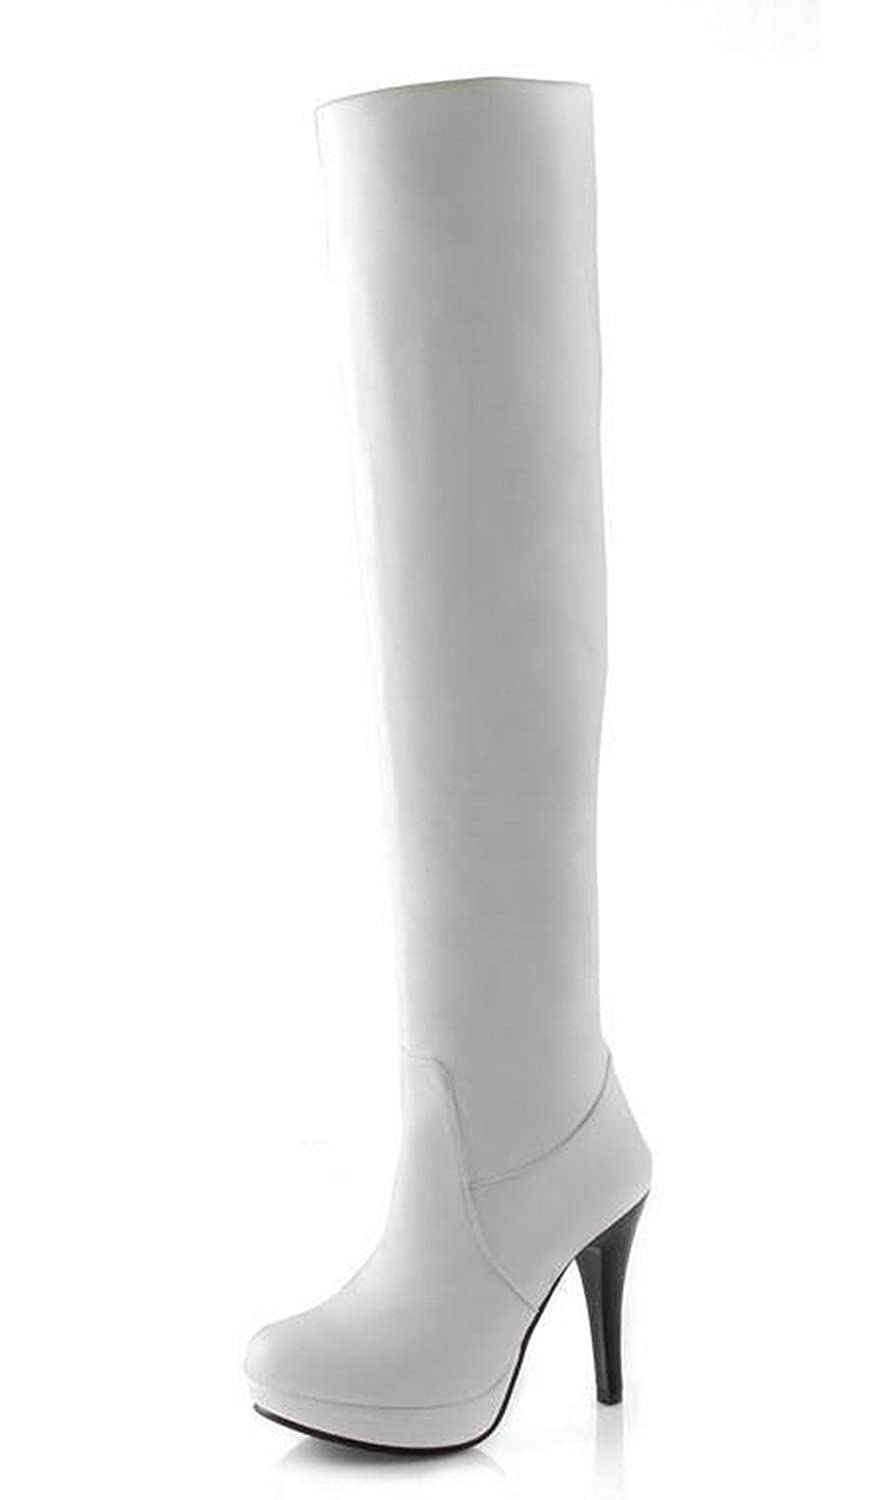 WeiPoot Womens Solid Round Closed Toe Soft Material PU Above-The-Knee Boots